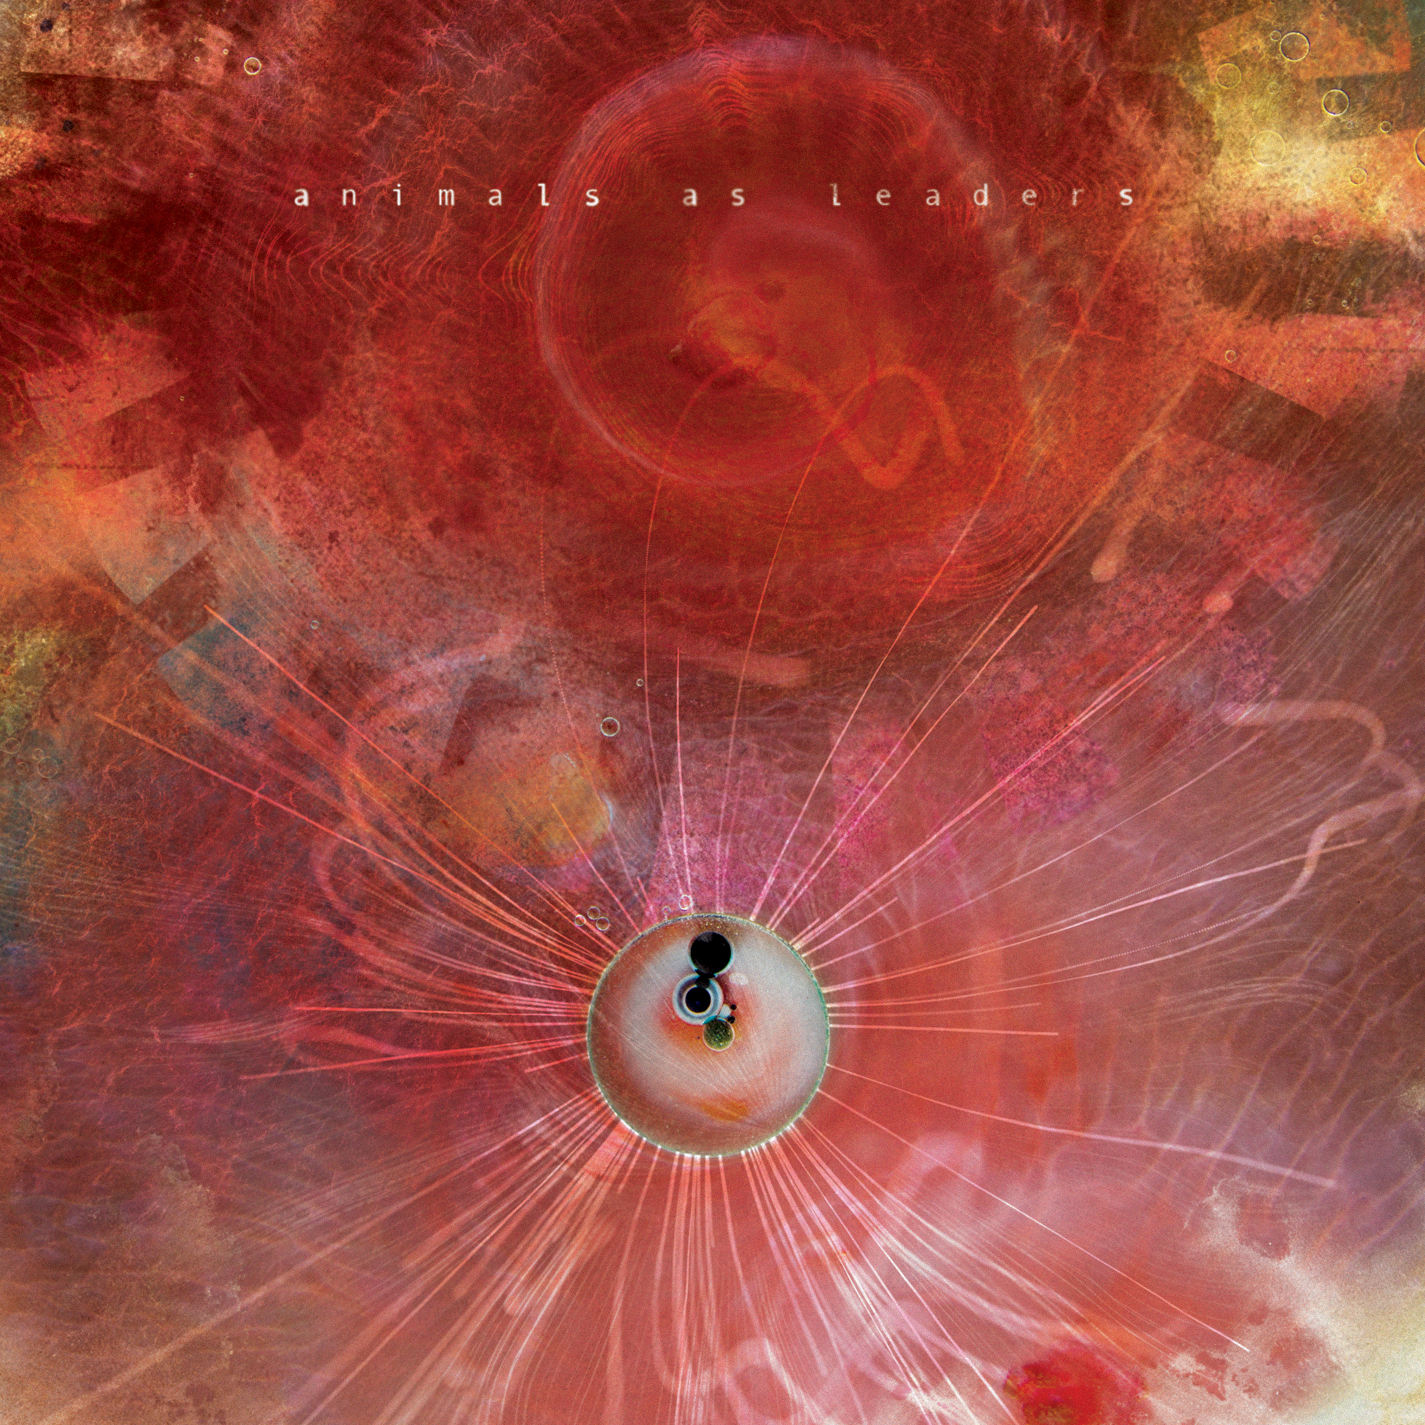 High Resolution Wallpaper   Animals As Leaders 1425x1425 px